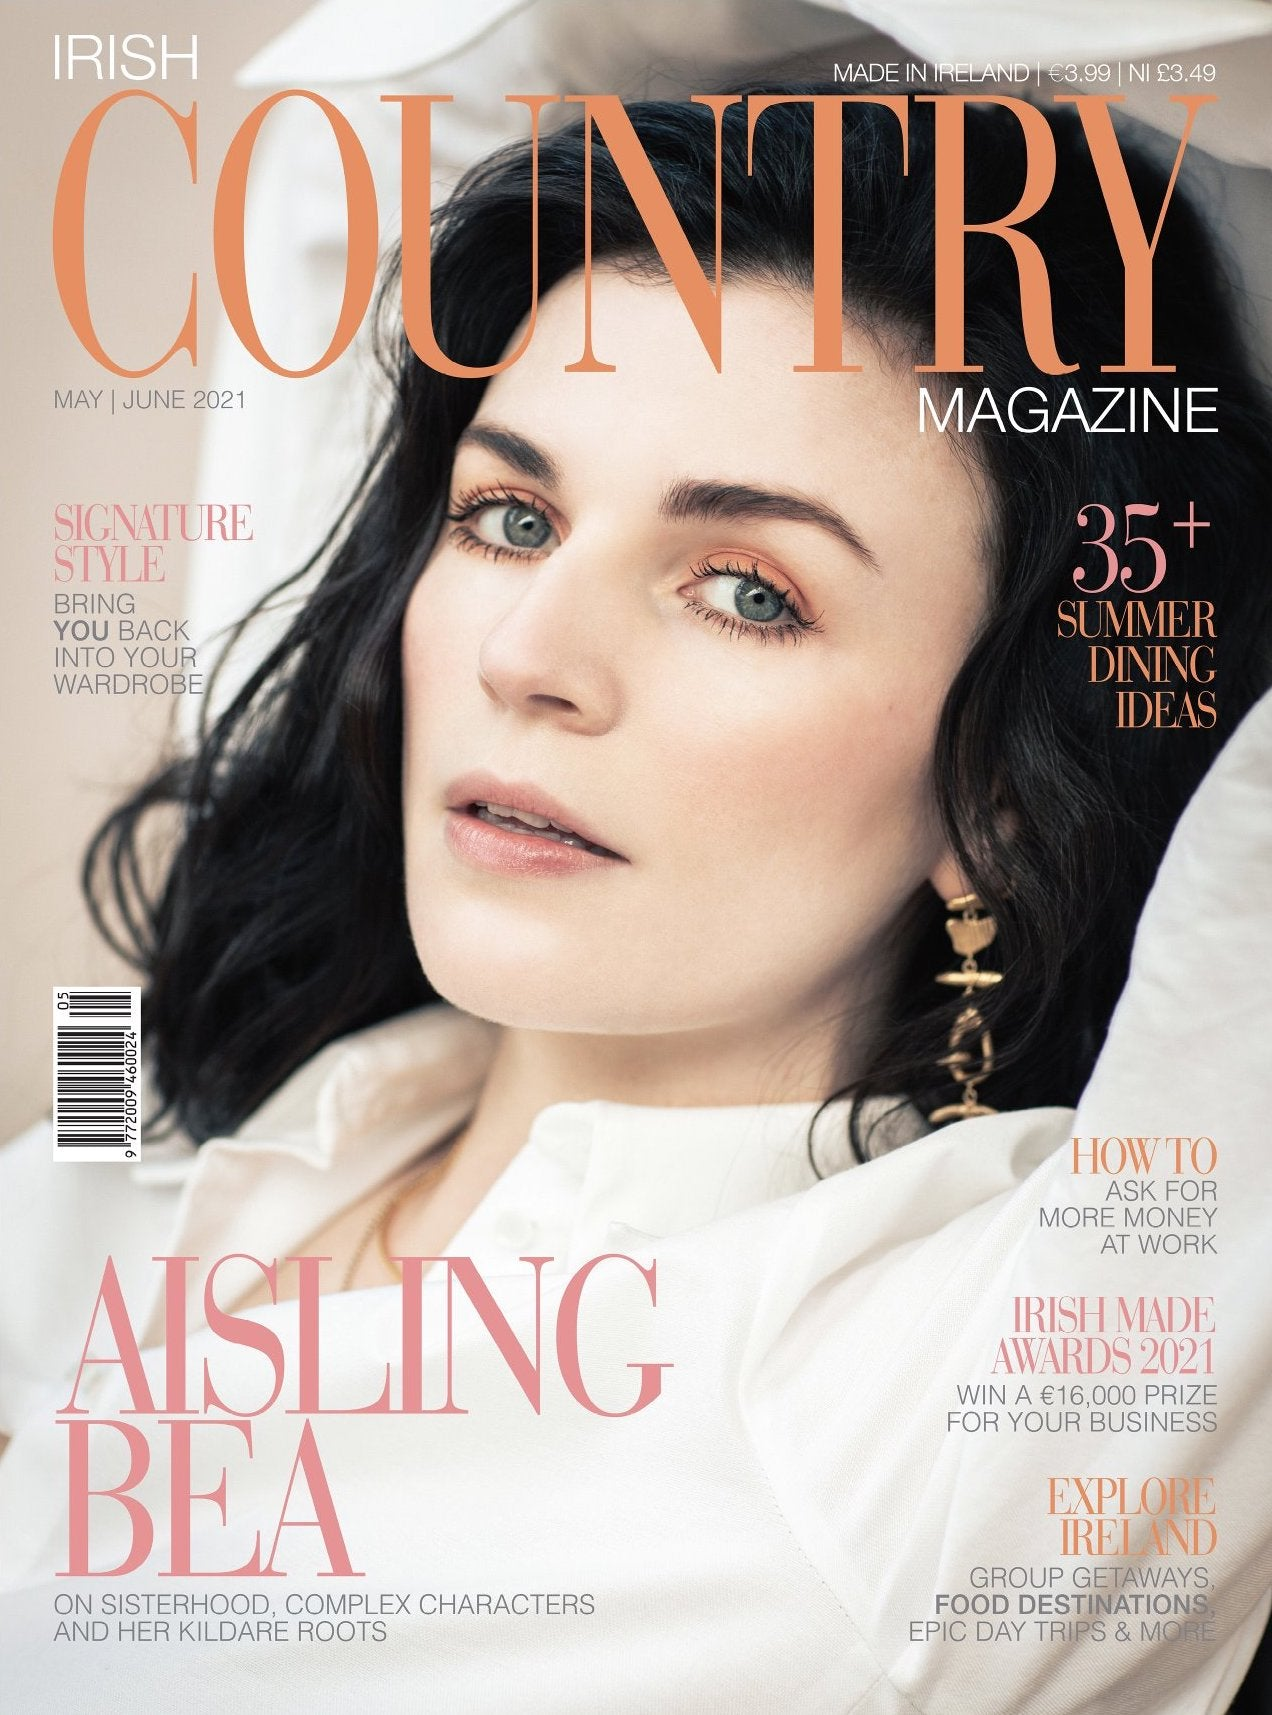 Irish Country Magazine May/June 2021